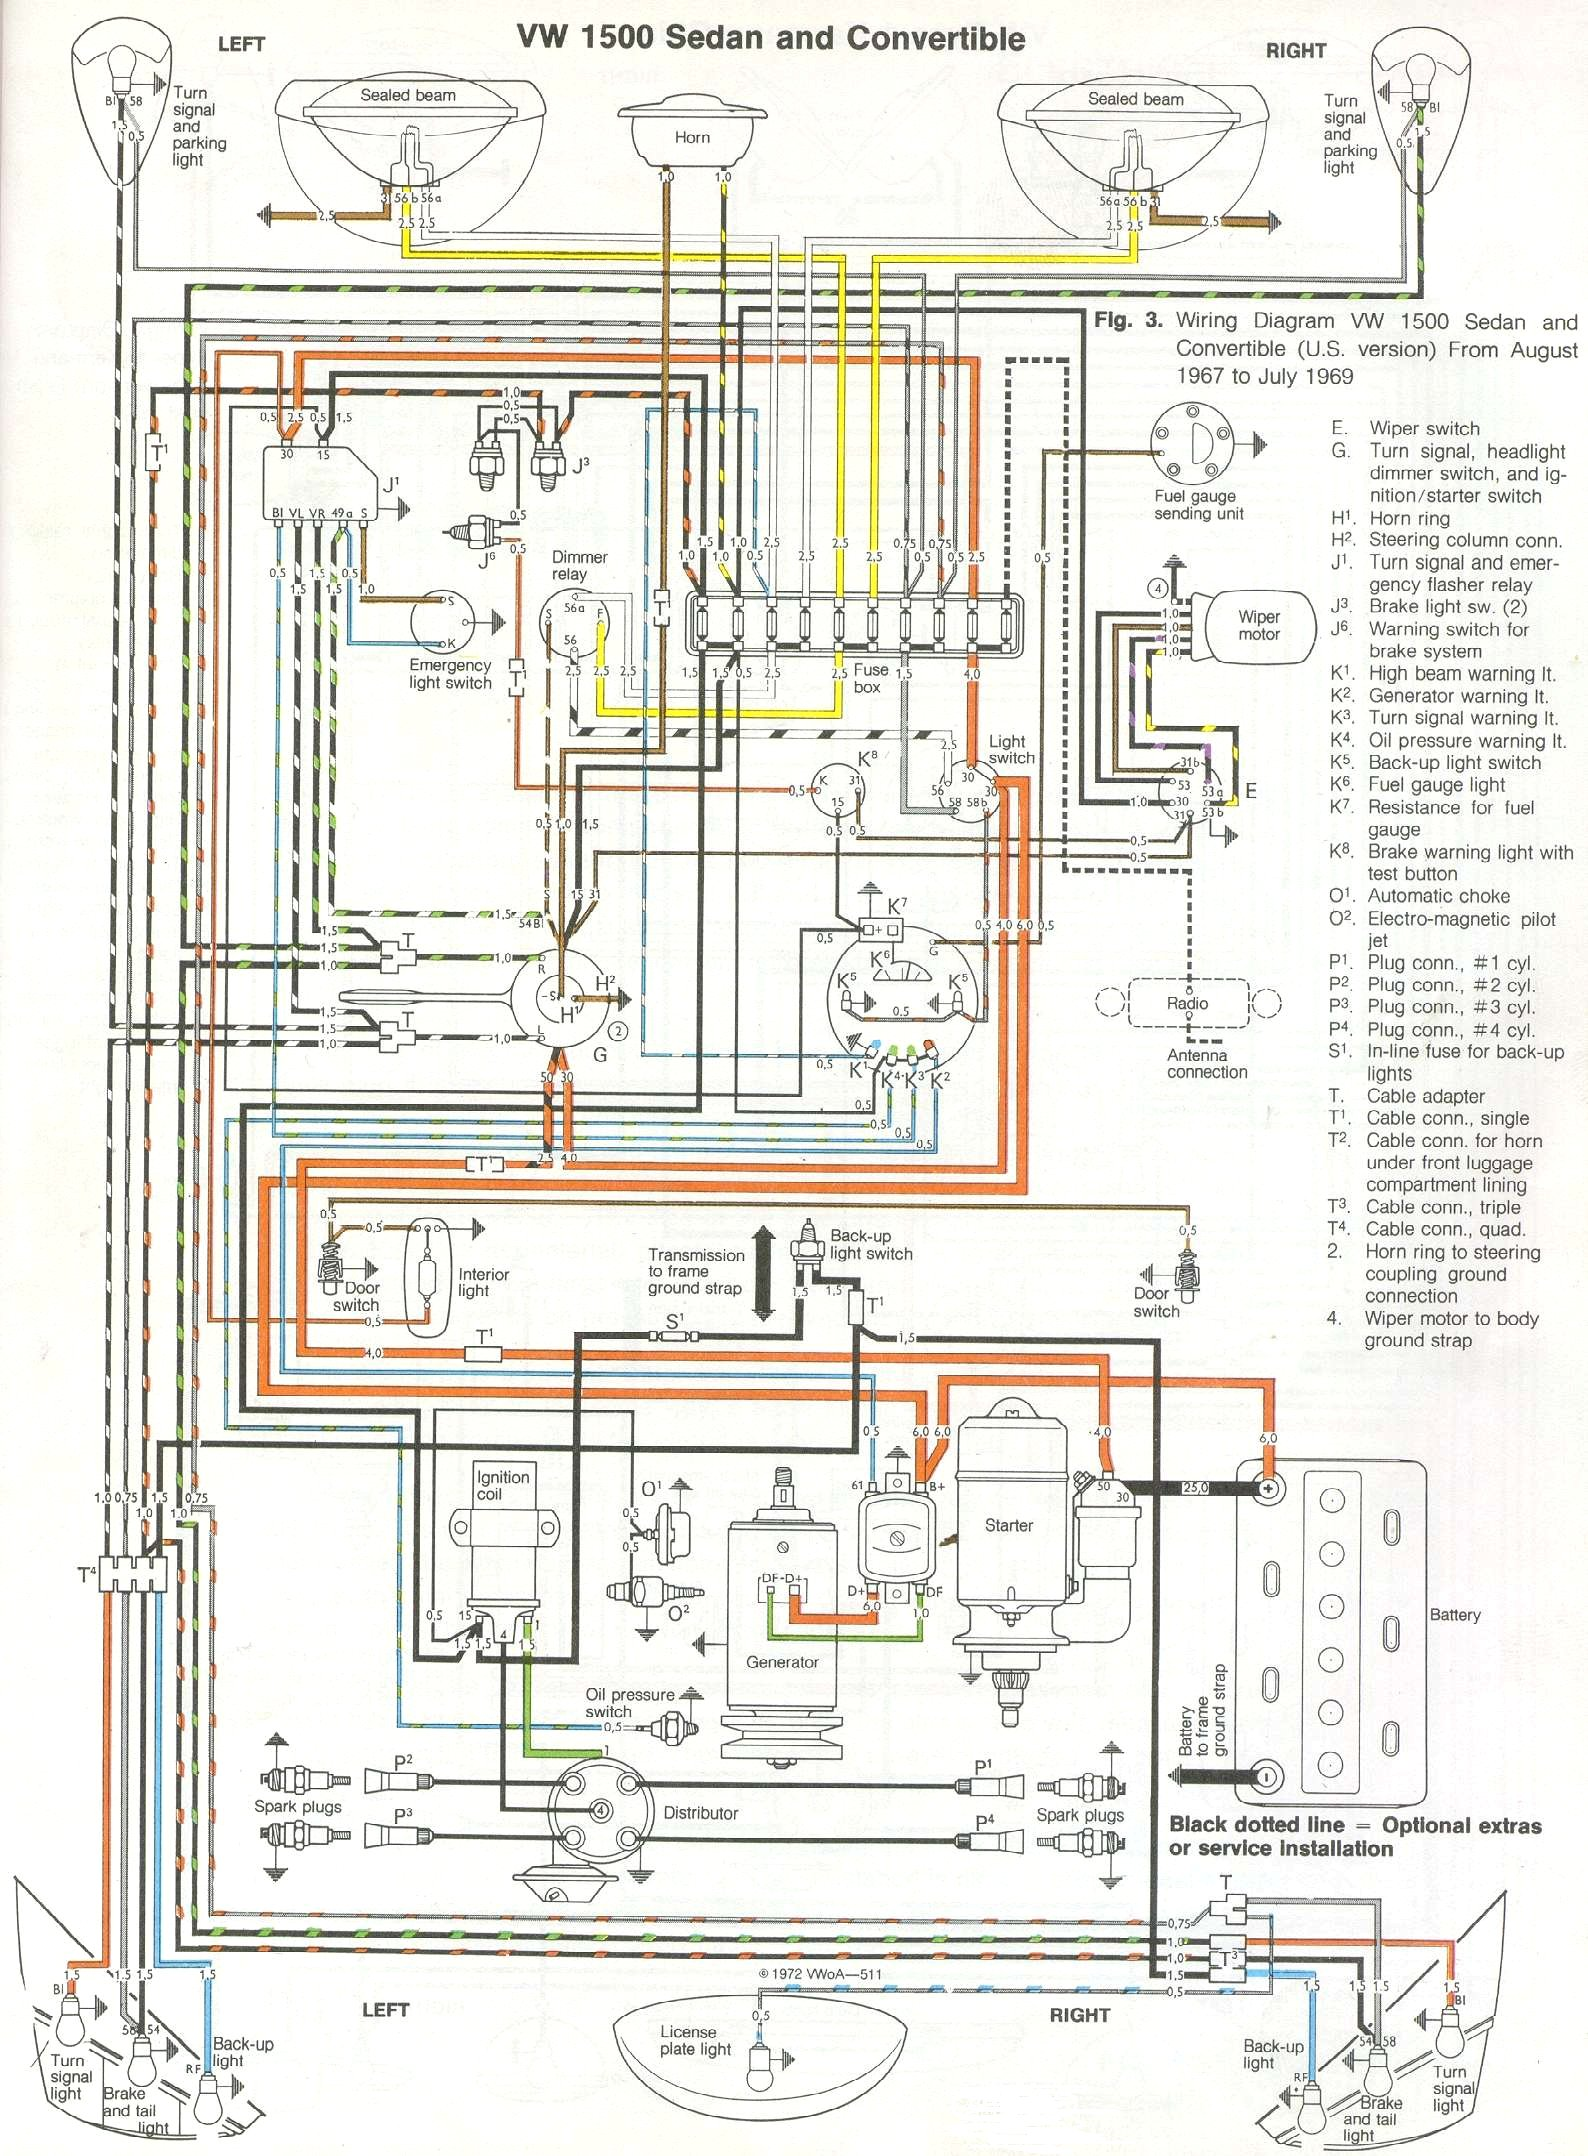 bentley fuse box 1969 71 beetle wiring diagram thegoldenbug com